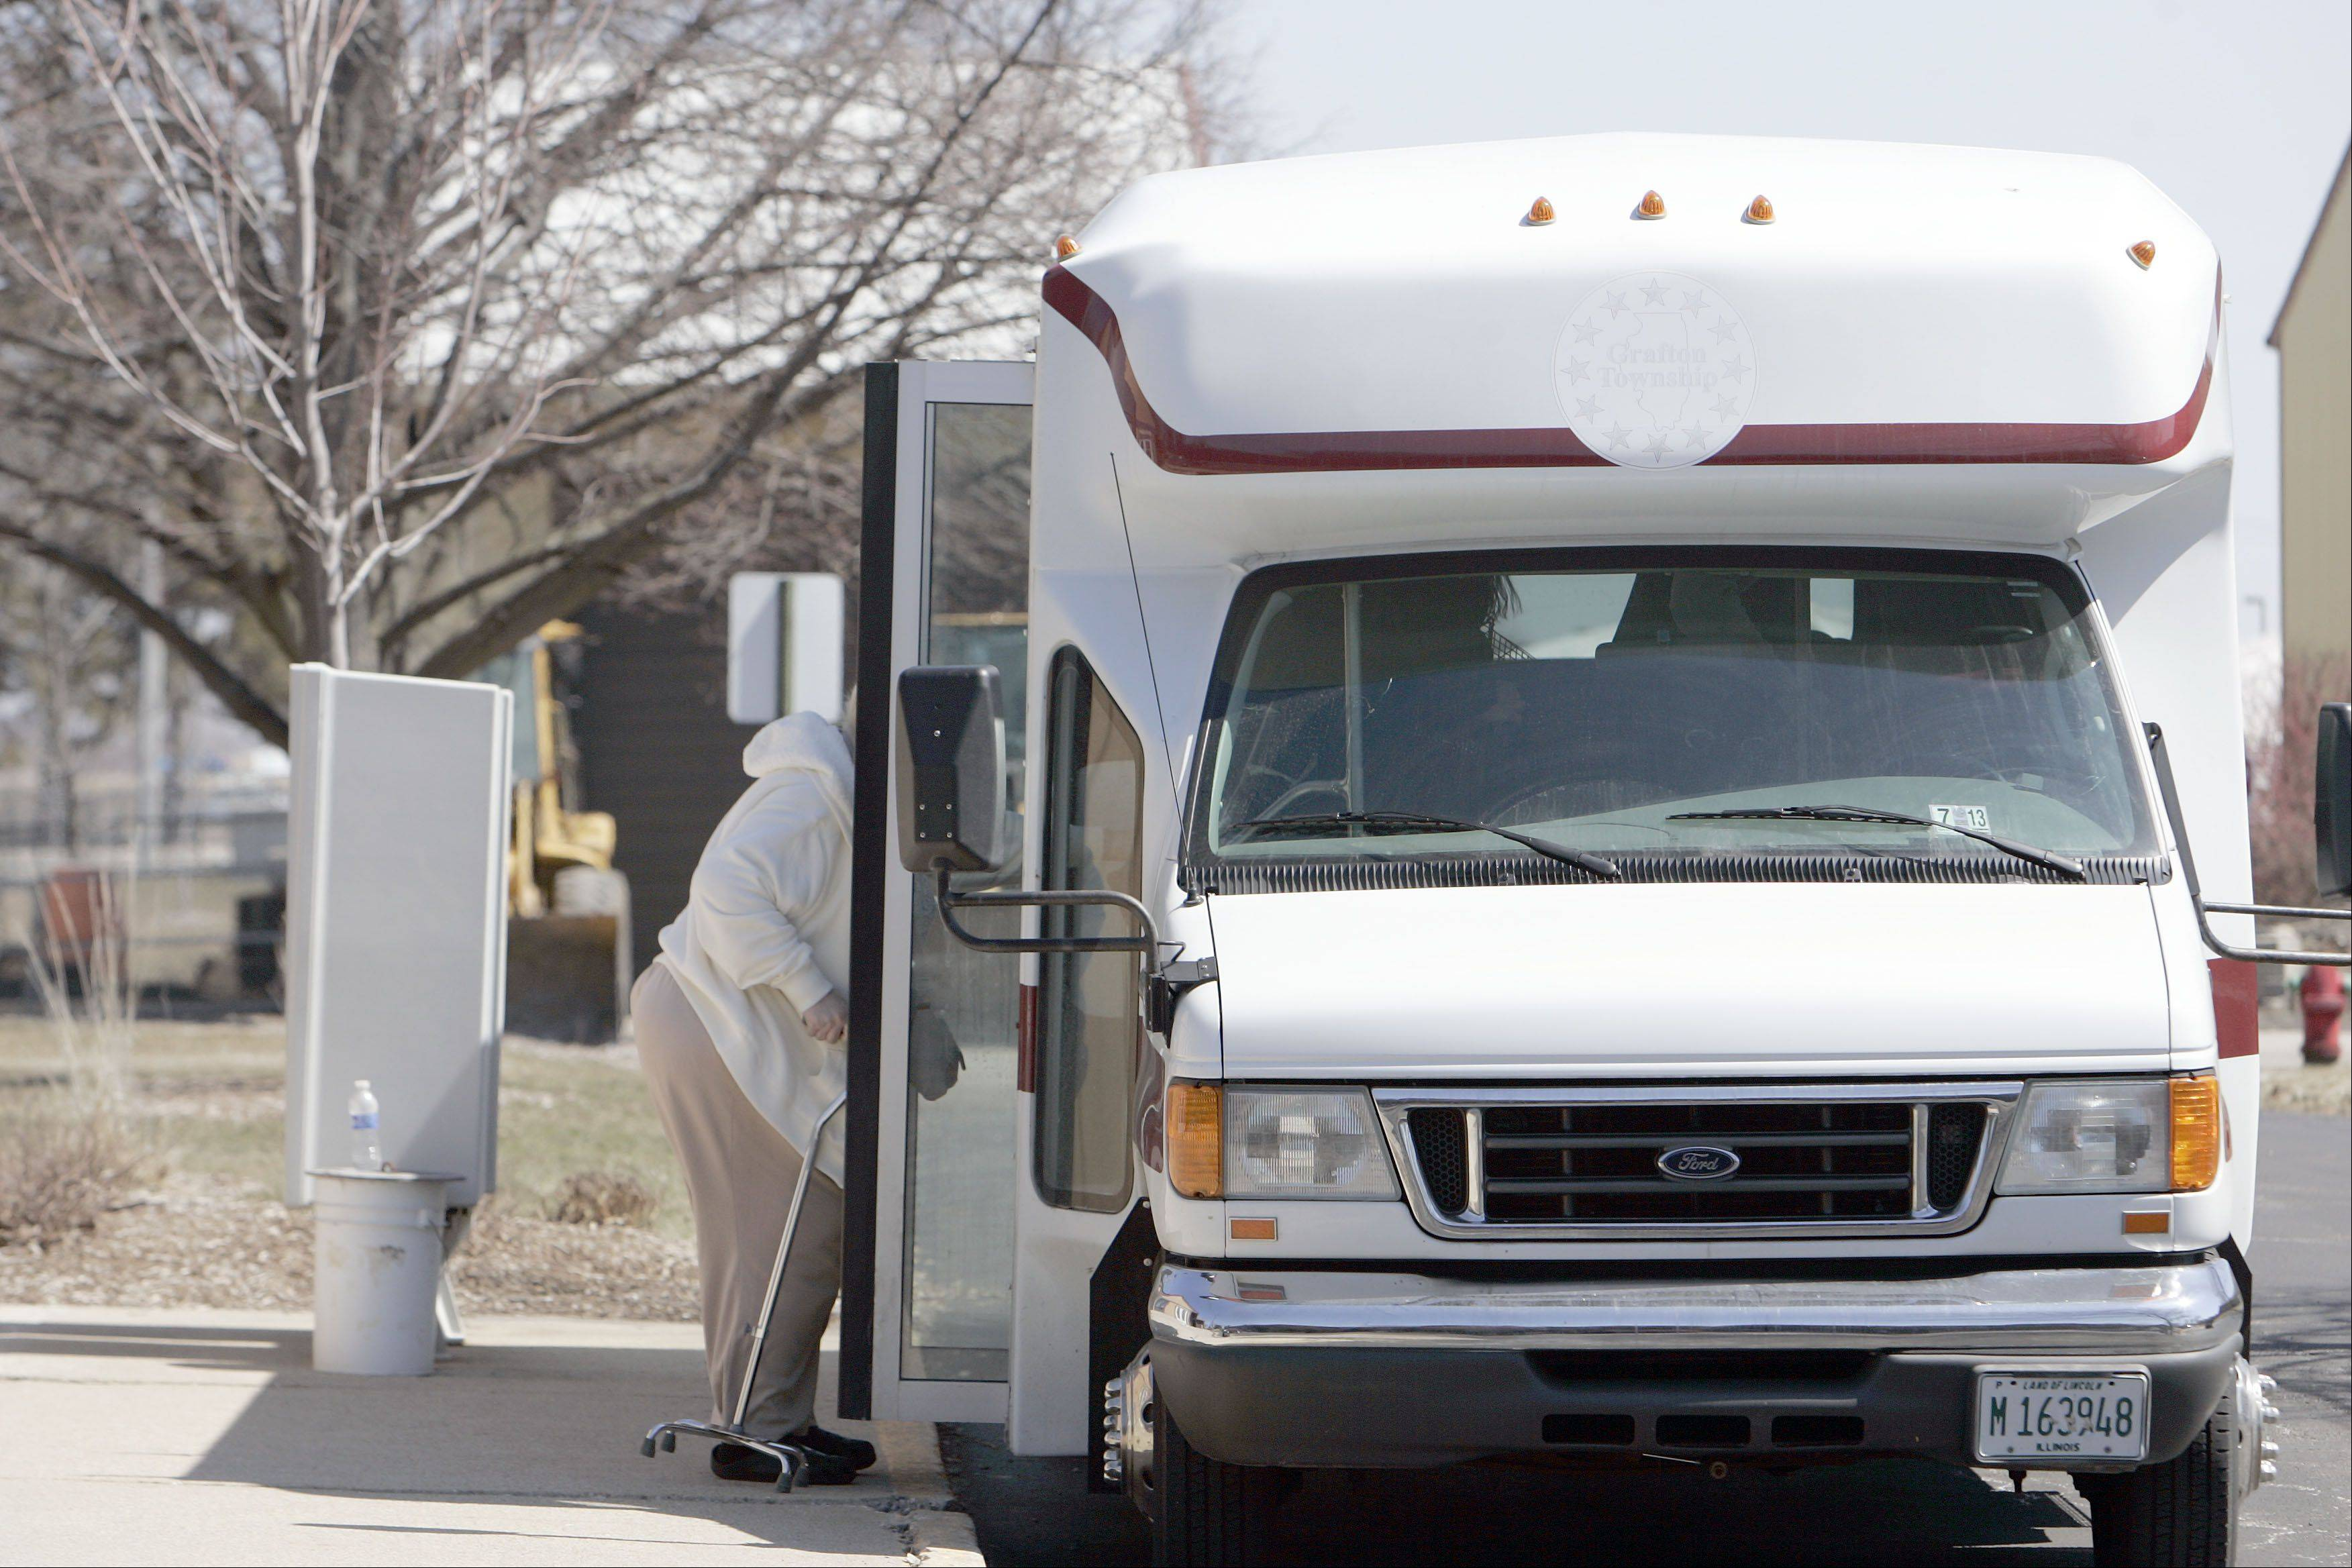 Most Grafton Township officials say they favor cutting bus service to the Sun City portion of Huntley that lies within Rutland Township. Meanwhile, Rutland leaders are no closer to deciding how to serve the roughly 130 seniors and disabled riders who would be affected by Grafton�s vote, which is scheduled Monday.